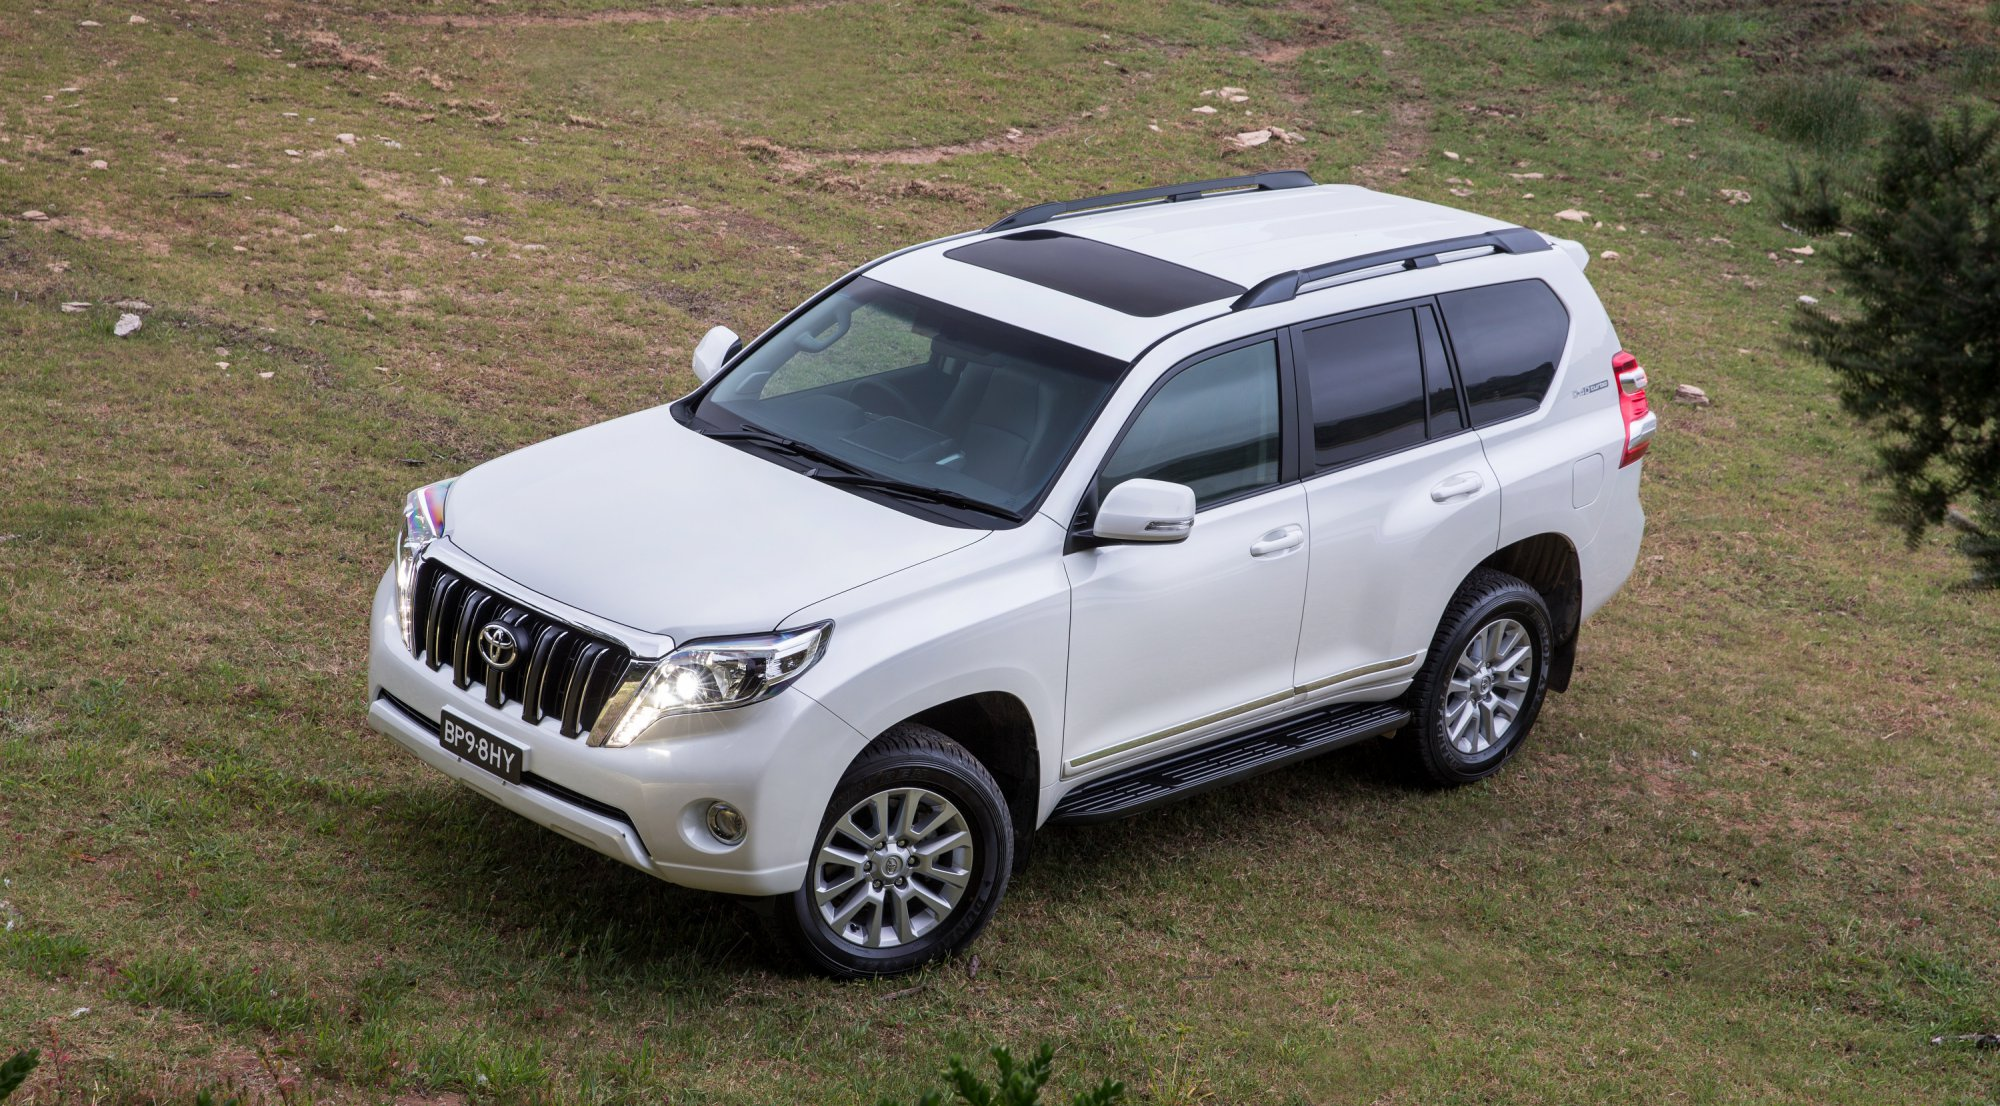 news 2017 sees return of toyota prado altitude. Black Bedroom Furniture Sets. Home Design Ideas